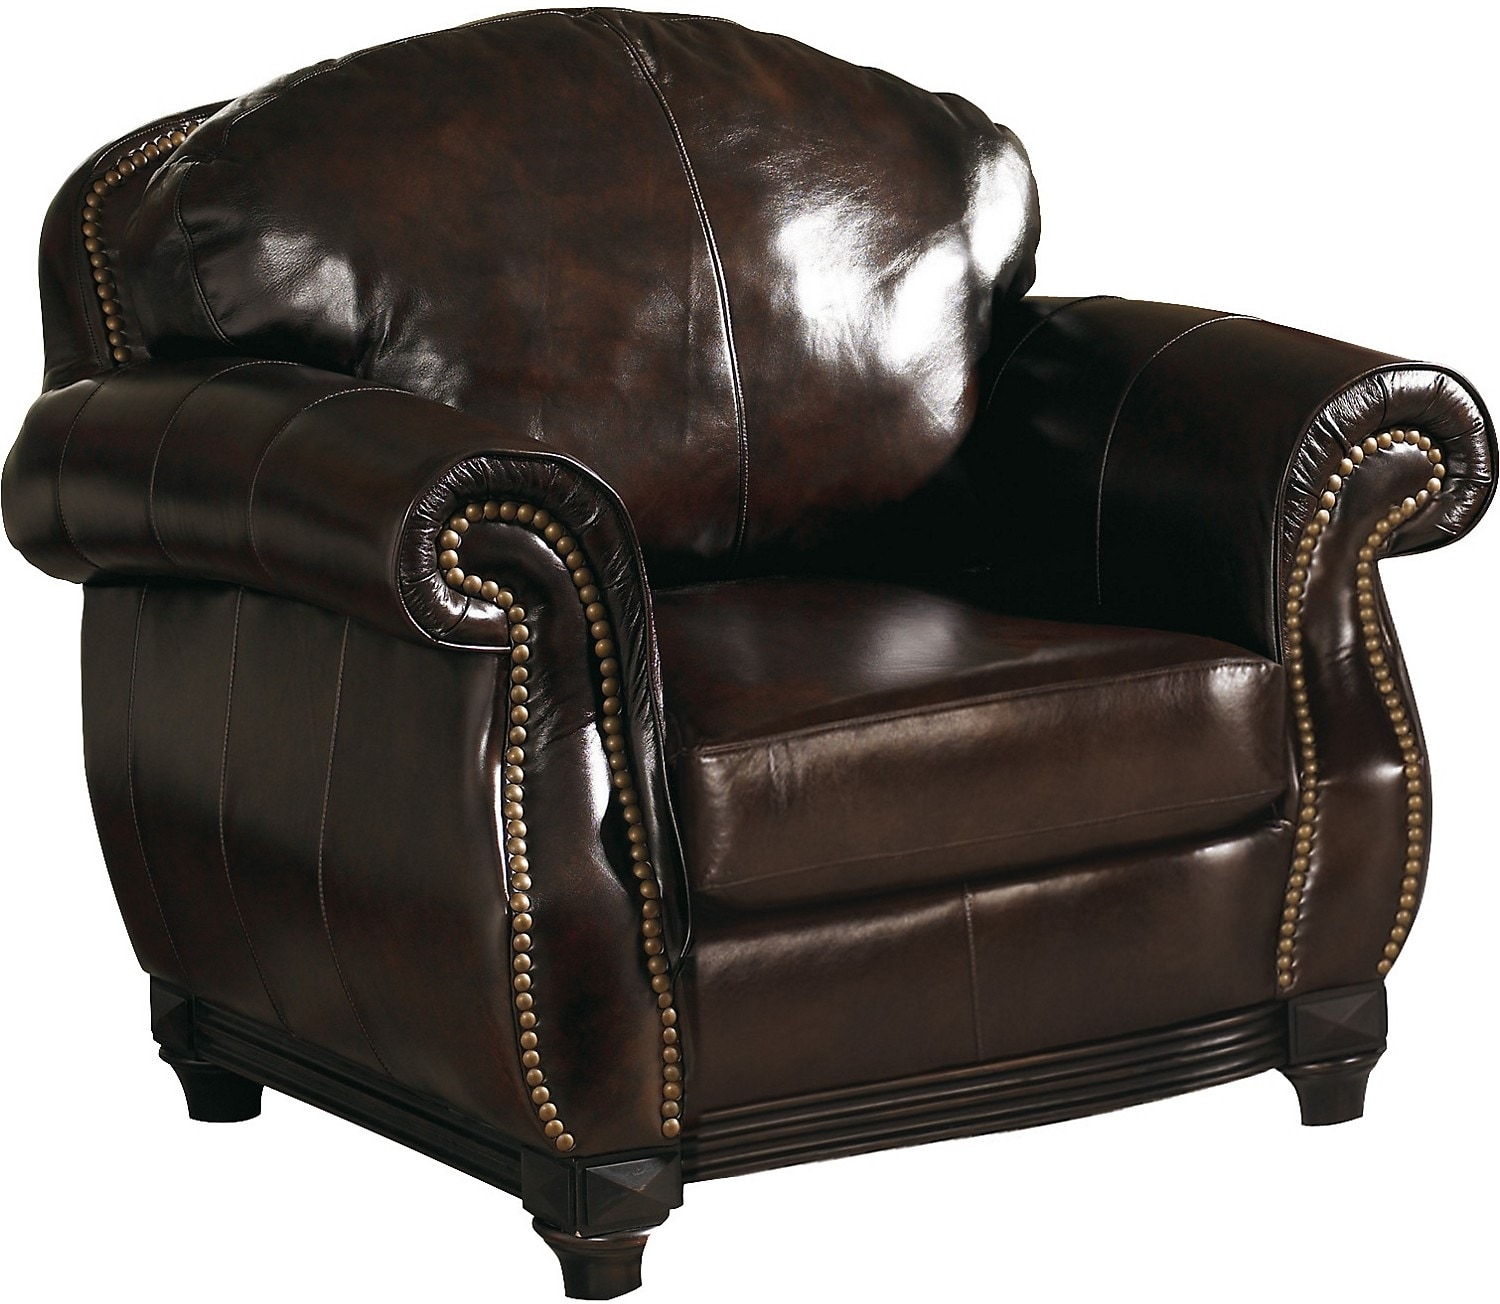 Living Room Furniture - Prestige 100% Genuine Leather Chair - Brown